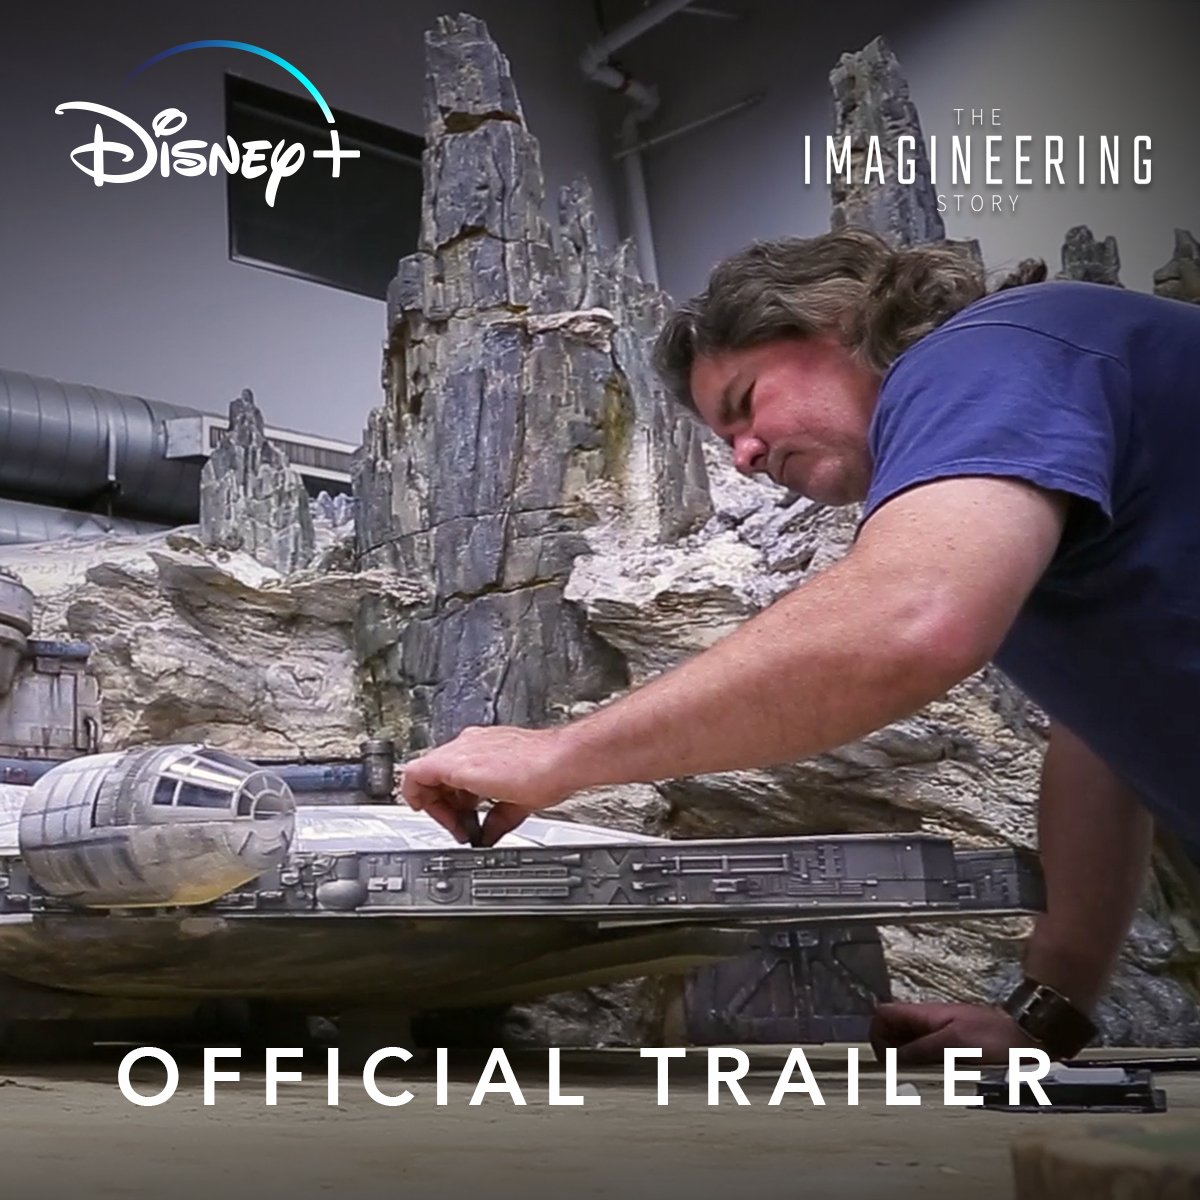 Behind-the-scenes of the Disney Parks dream. The Imagineering Story, an original series, streaming Nov. 12 only on @DisneyPlus. #DisneyPlus